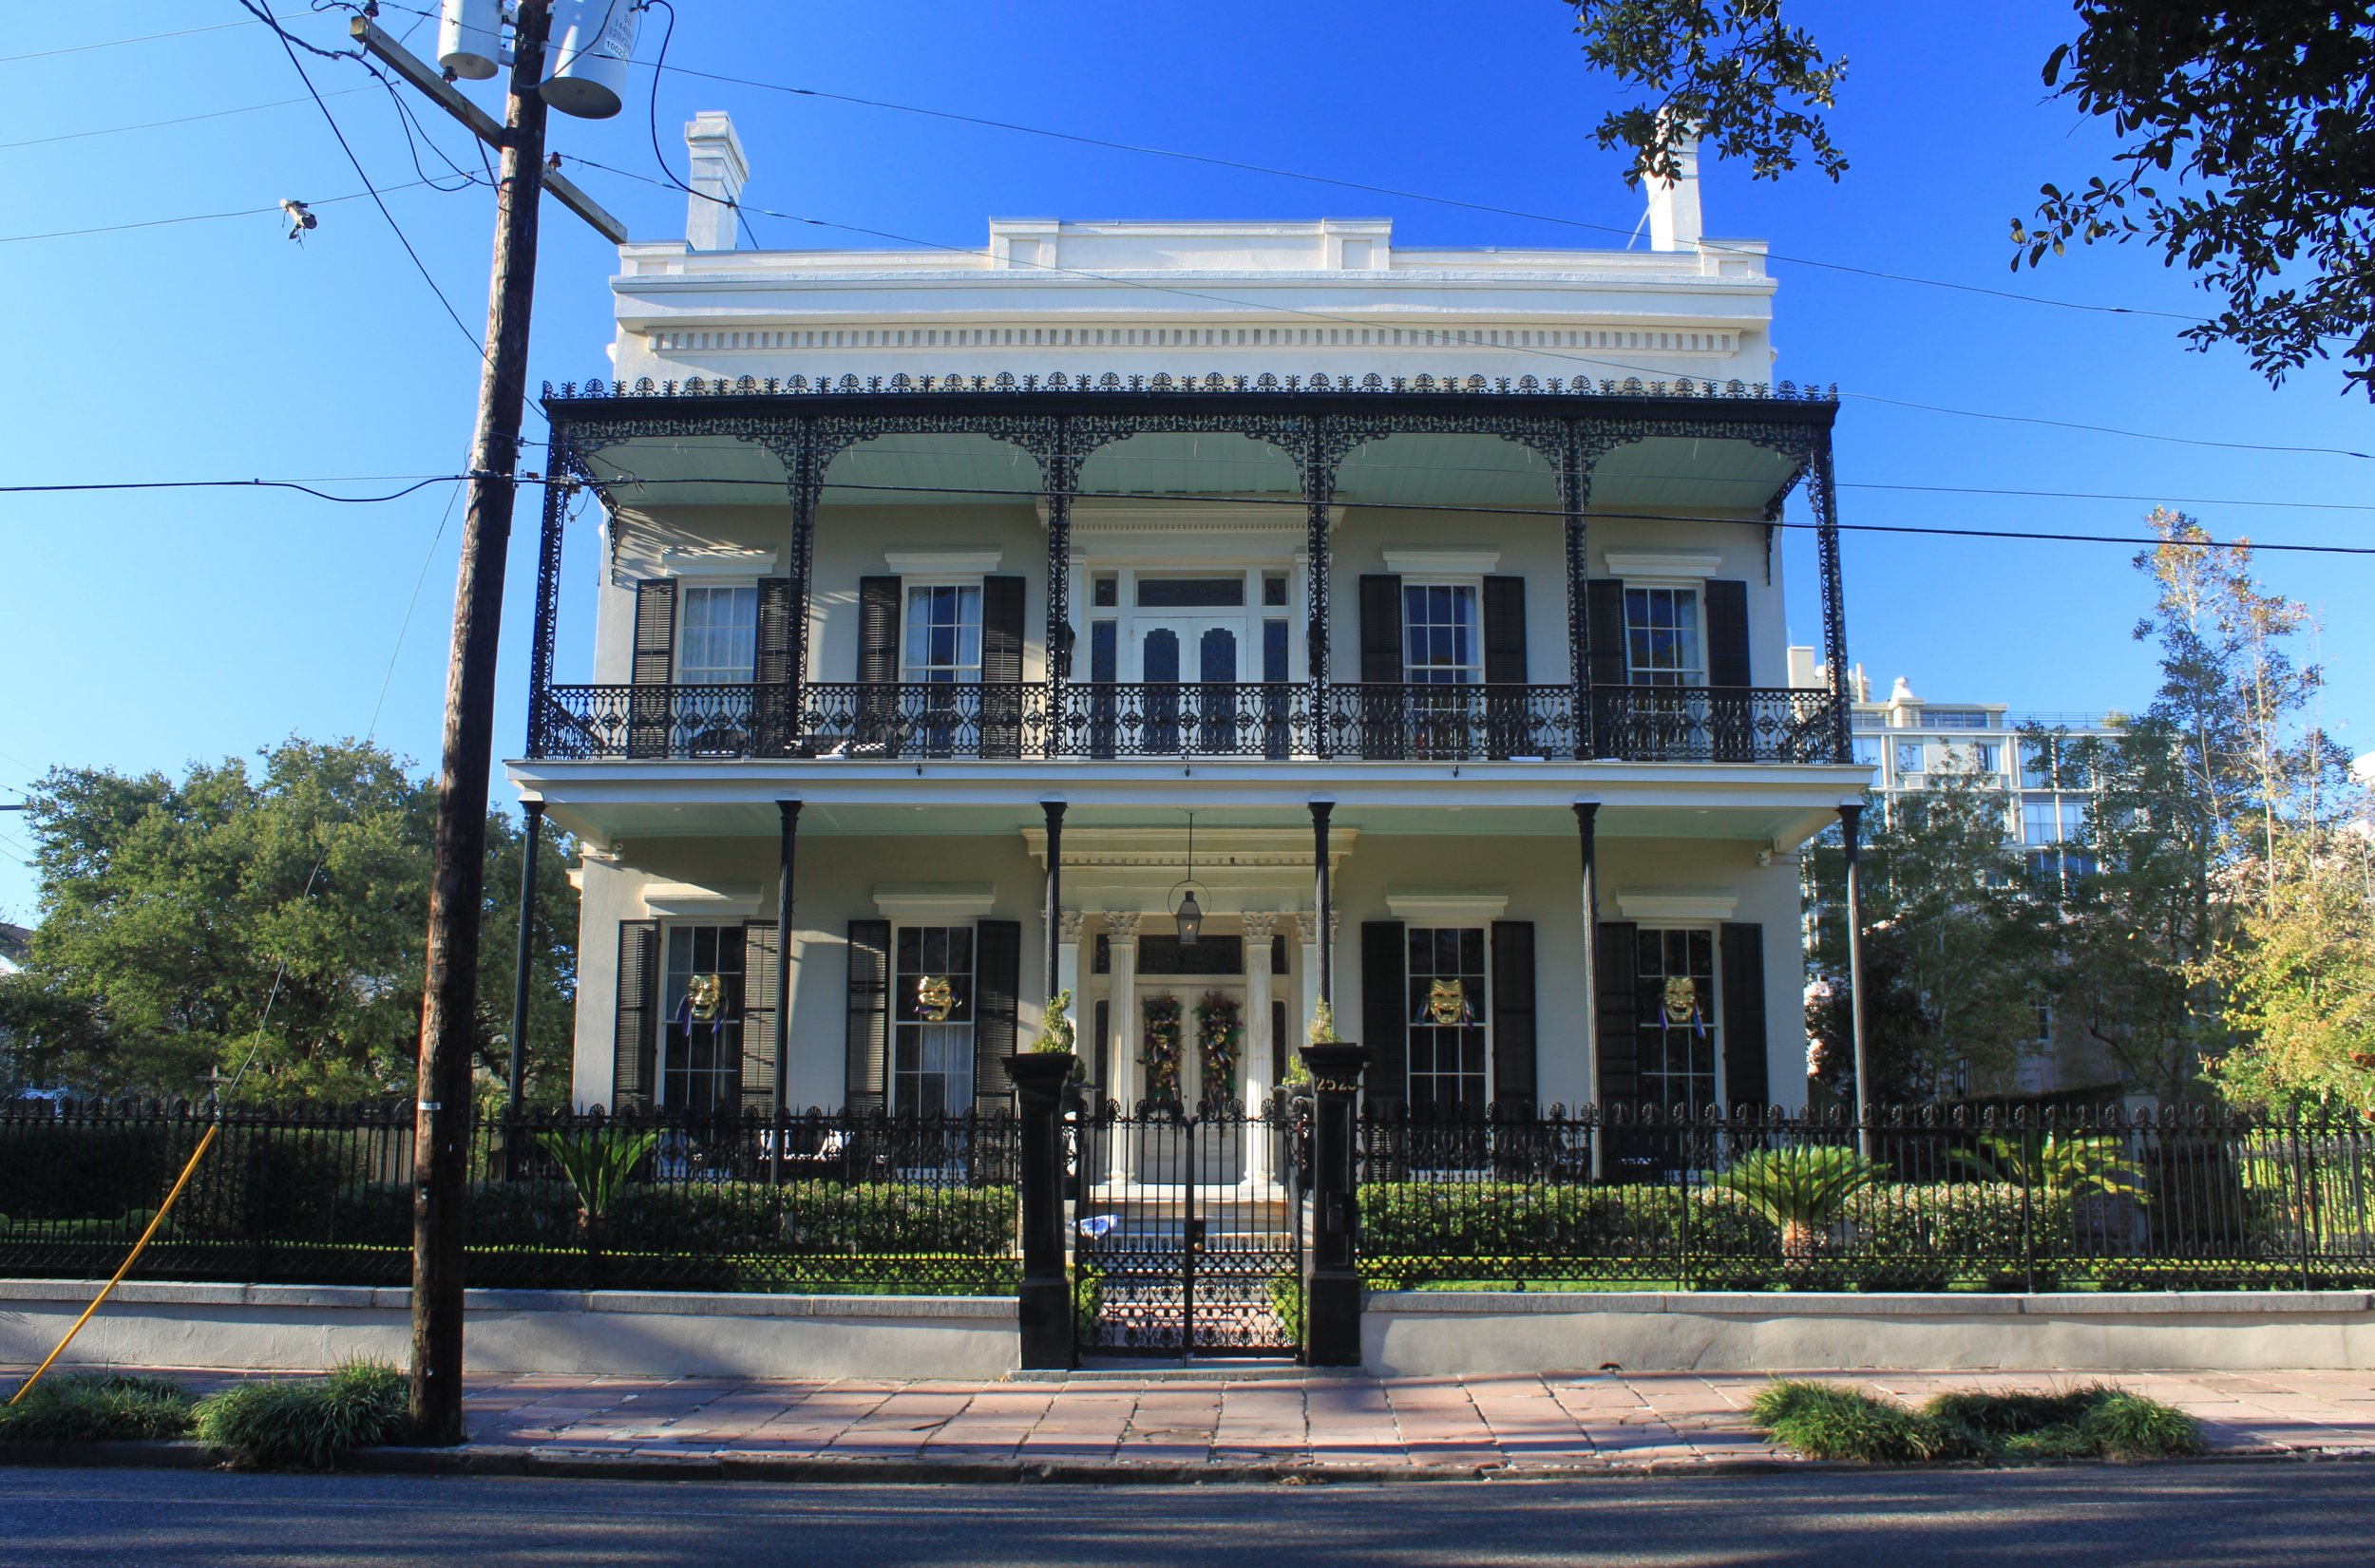 One of the many b-e-a-utiful architectural sights getting lost in The Garden District.